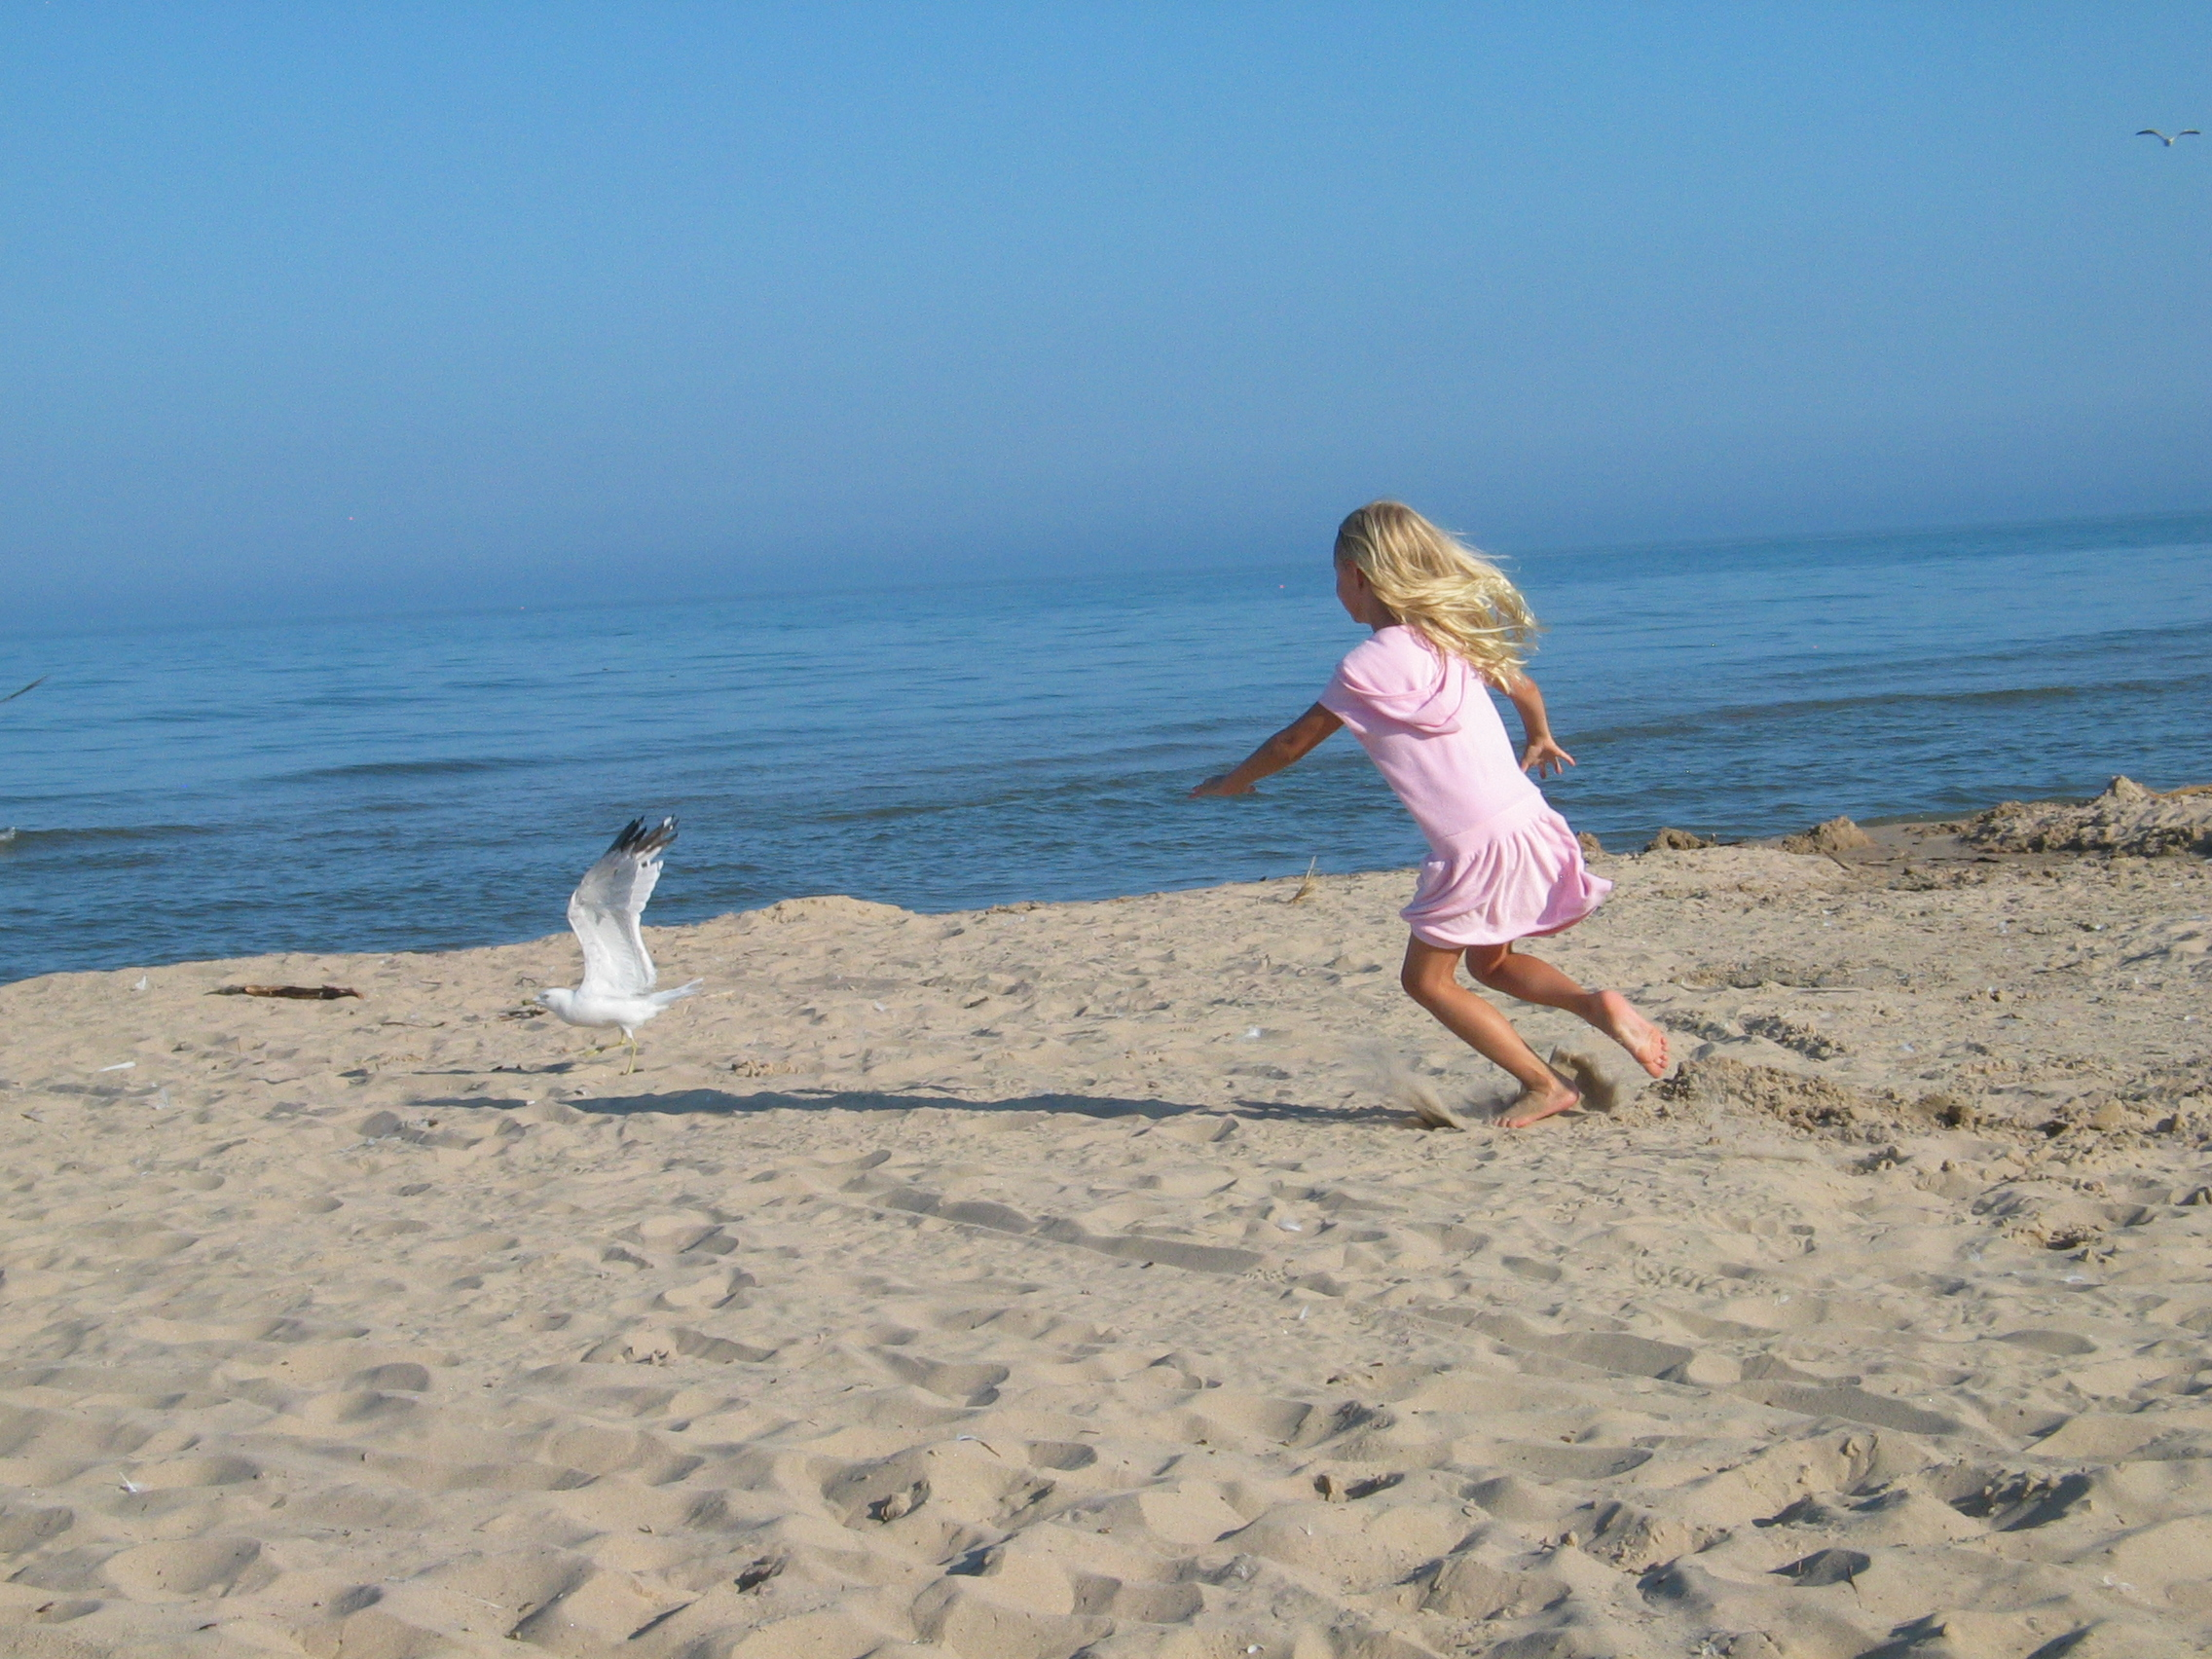 Kat chases seagulls... again